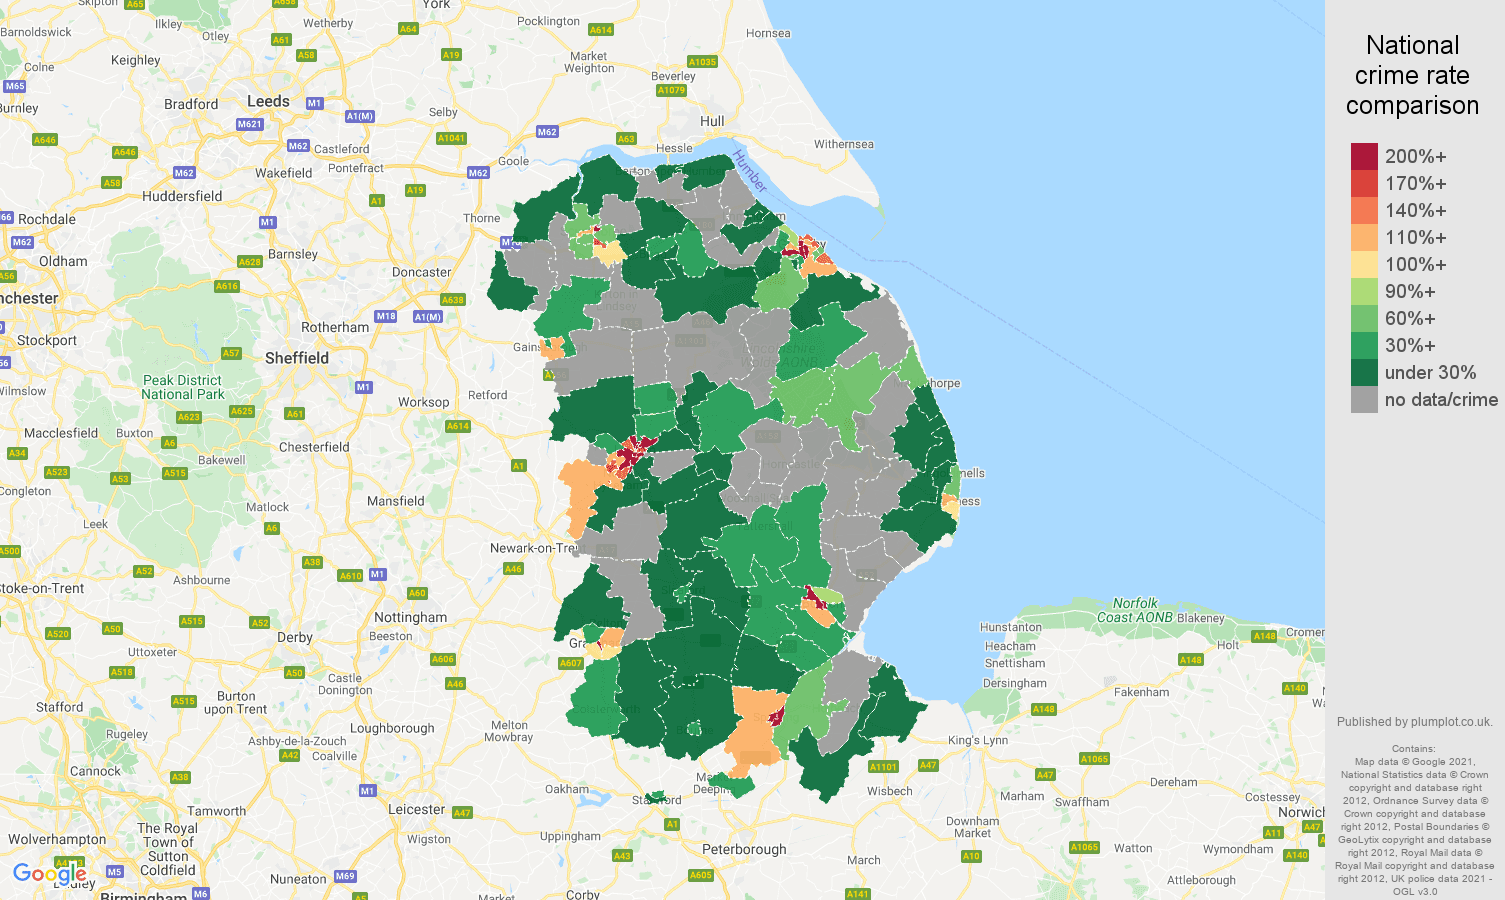 Lincolnshire bicycle theft crime rate comparison map